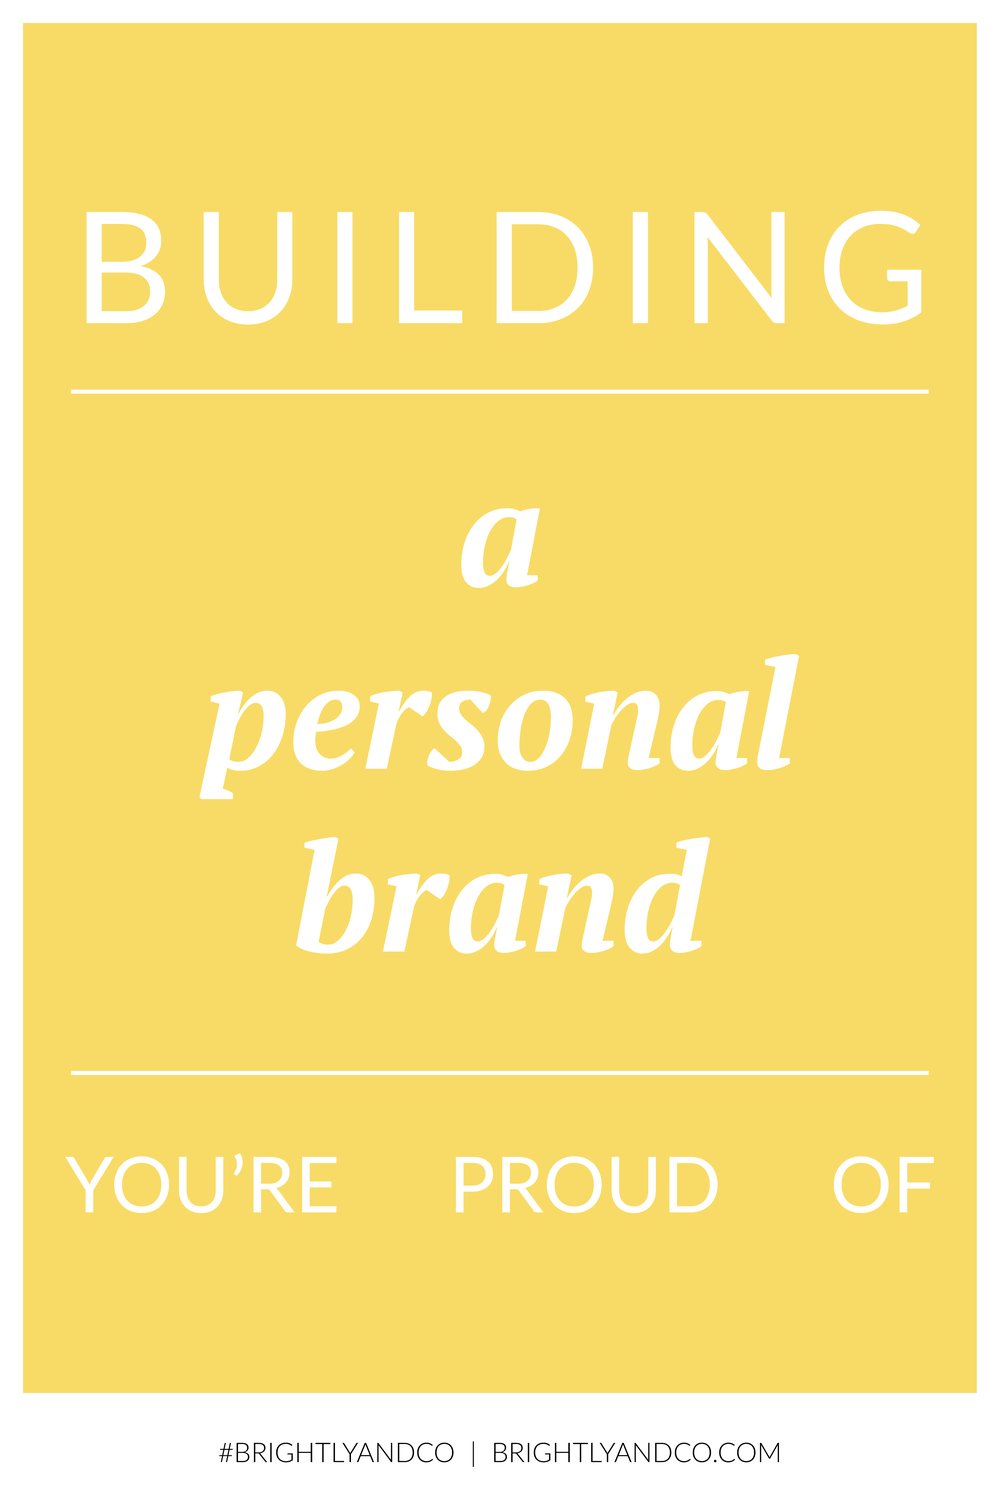 brightly co are you building a personal brand you re proud of are you building a personal brand you re proud of every day every